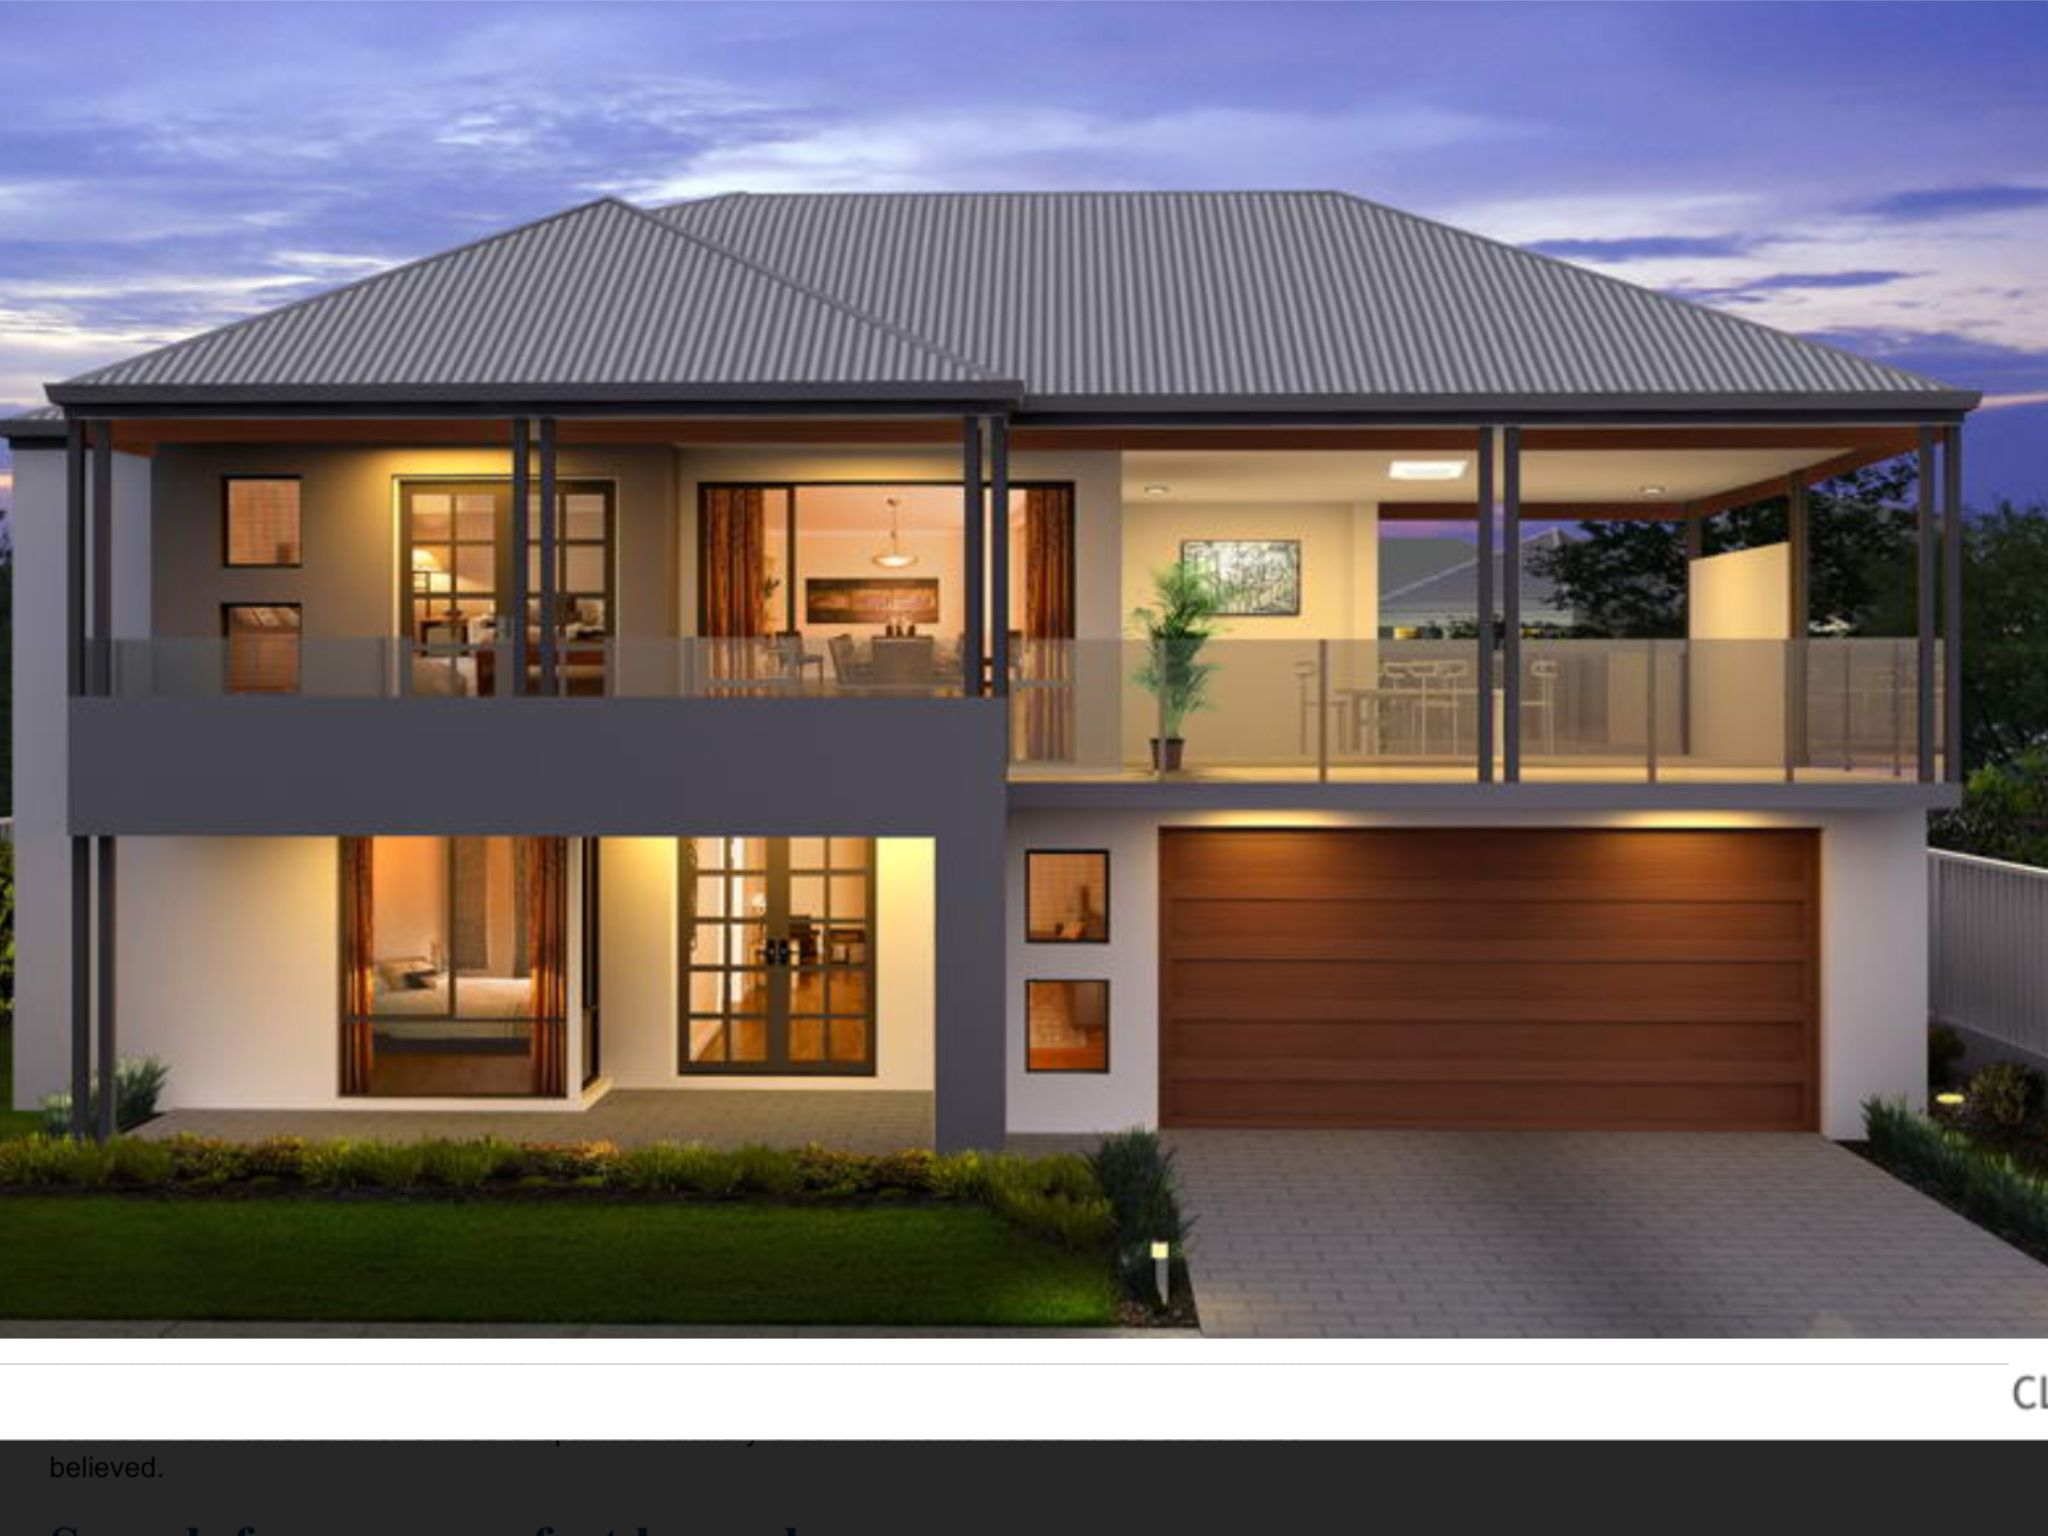 Modern Double Storey Houses Two Storey Facade Grey Roof Balcony Over Garage Glass